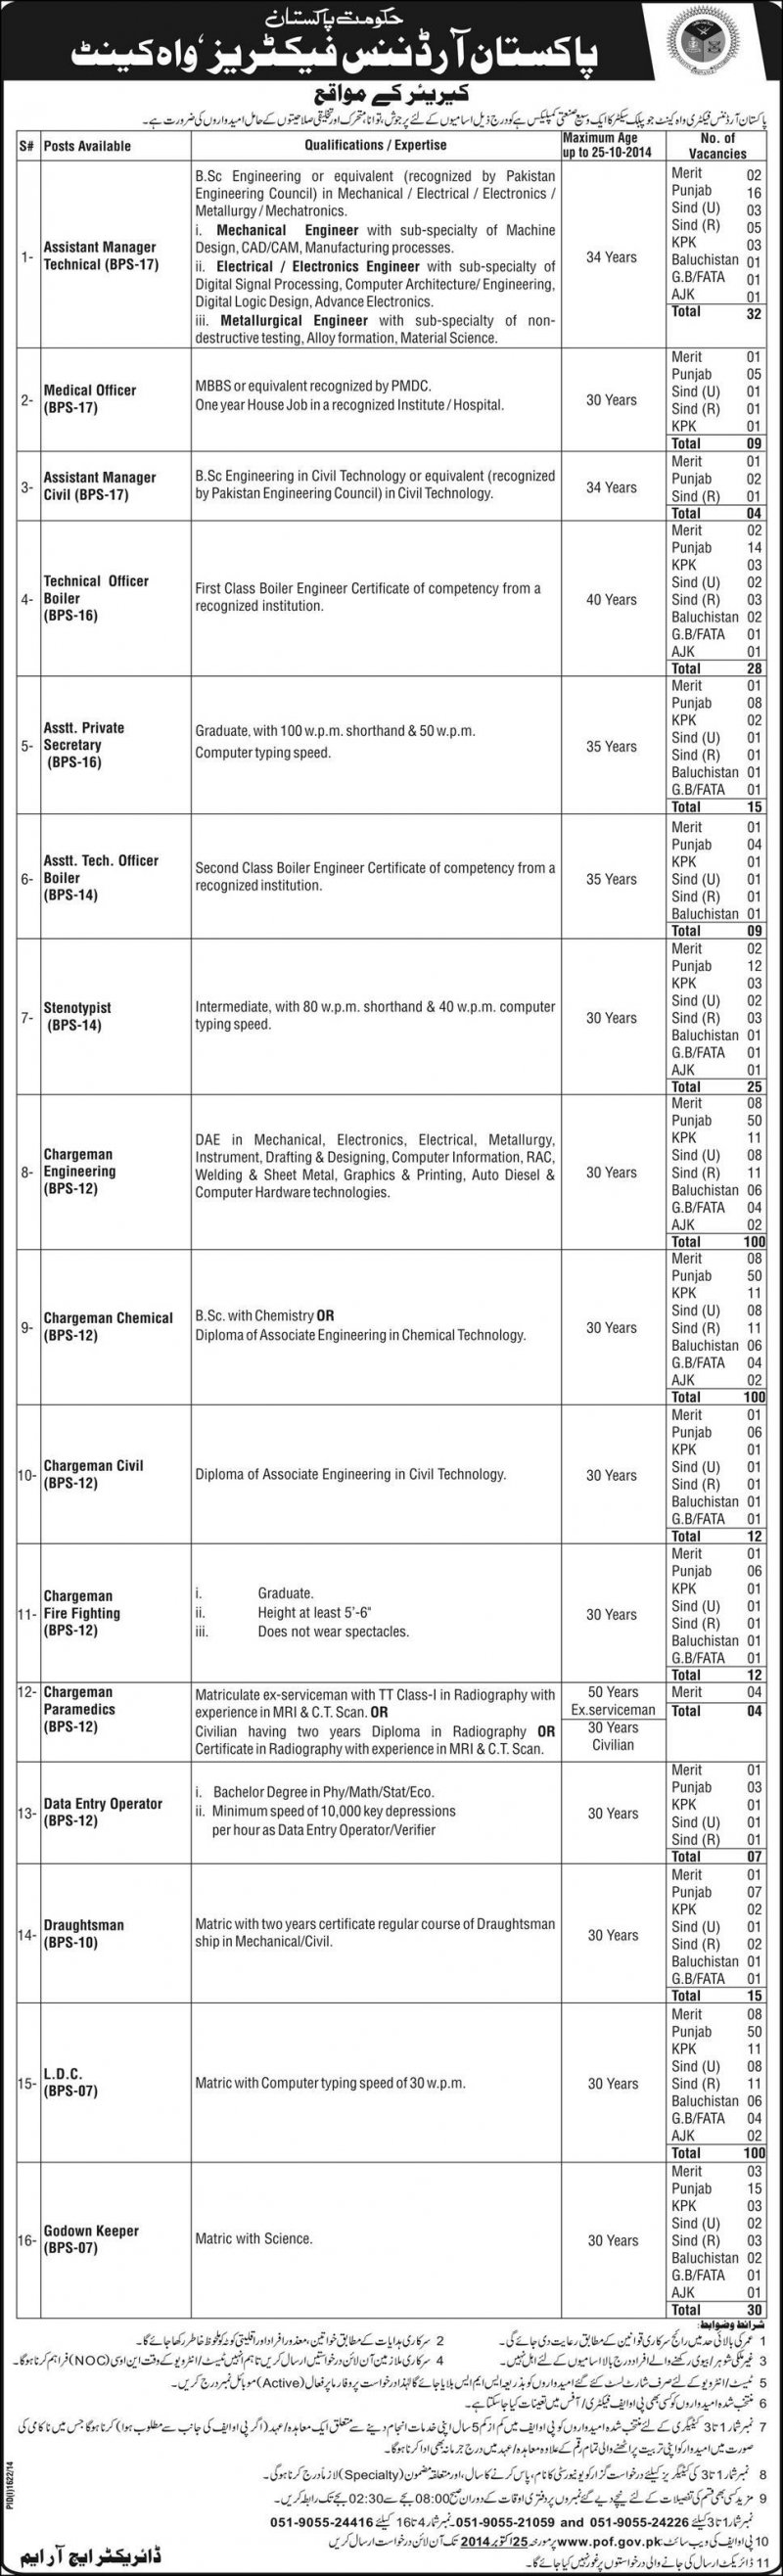 Jobs in Pakistan, jobs in Wahh cant, Jobs in Ordnance factory, Factory jobs